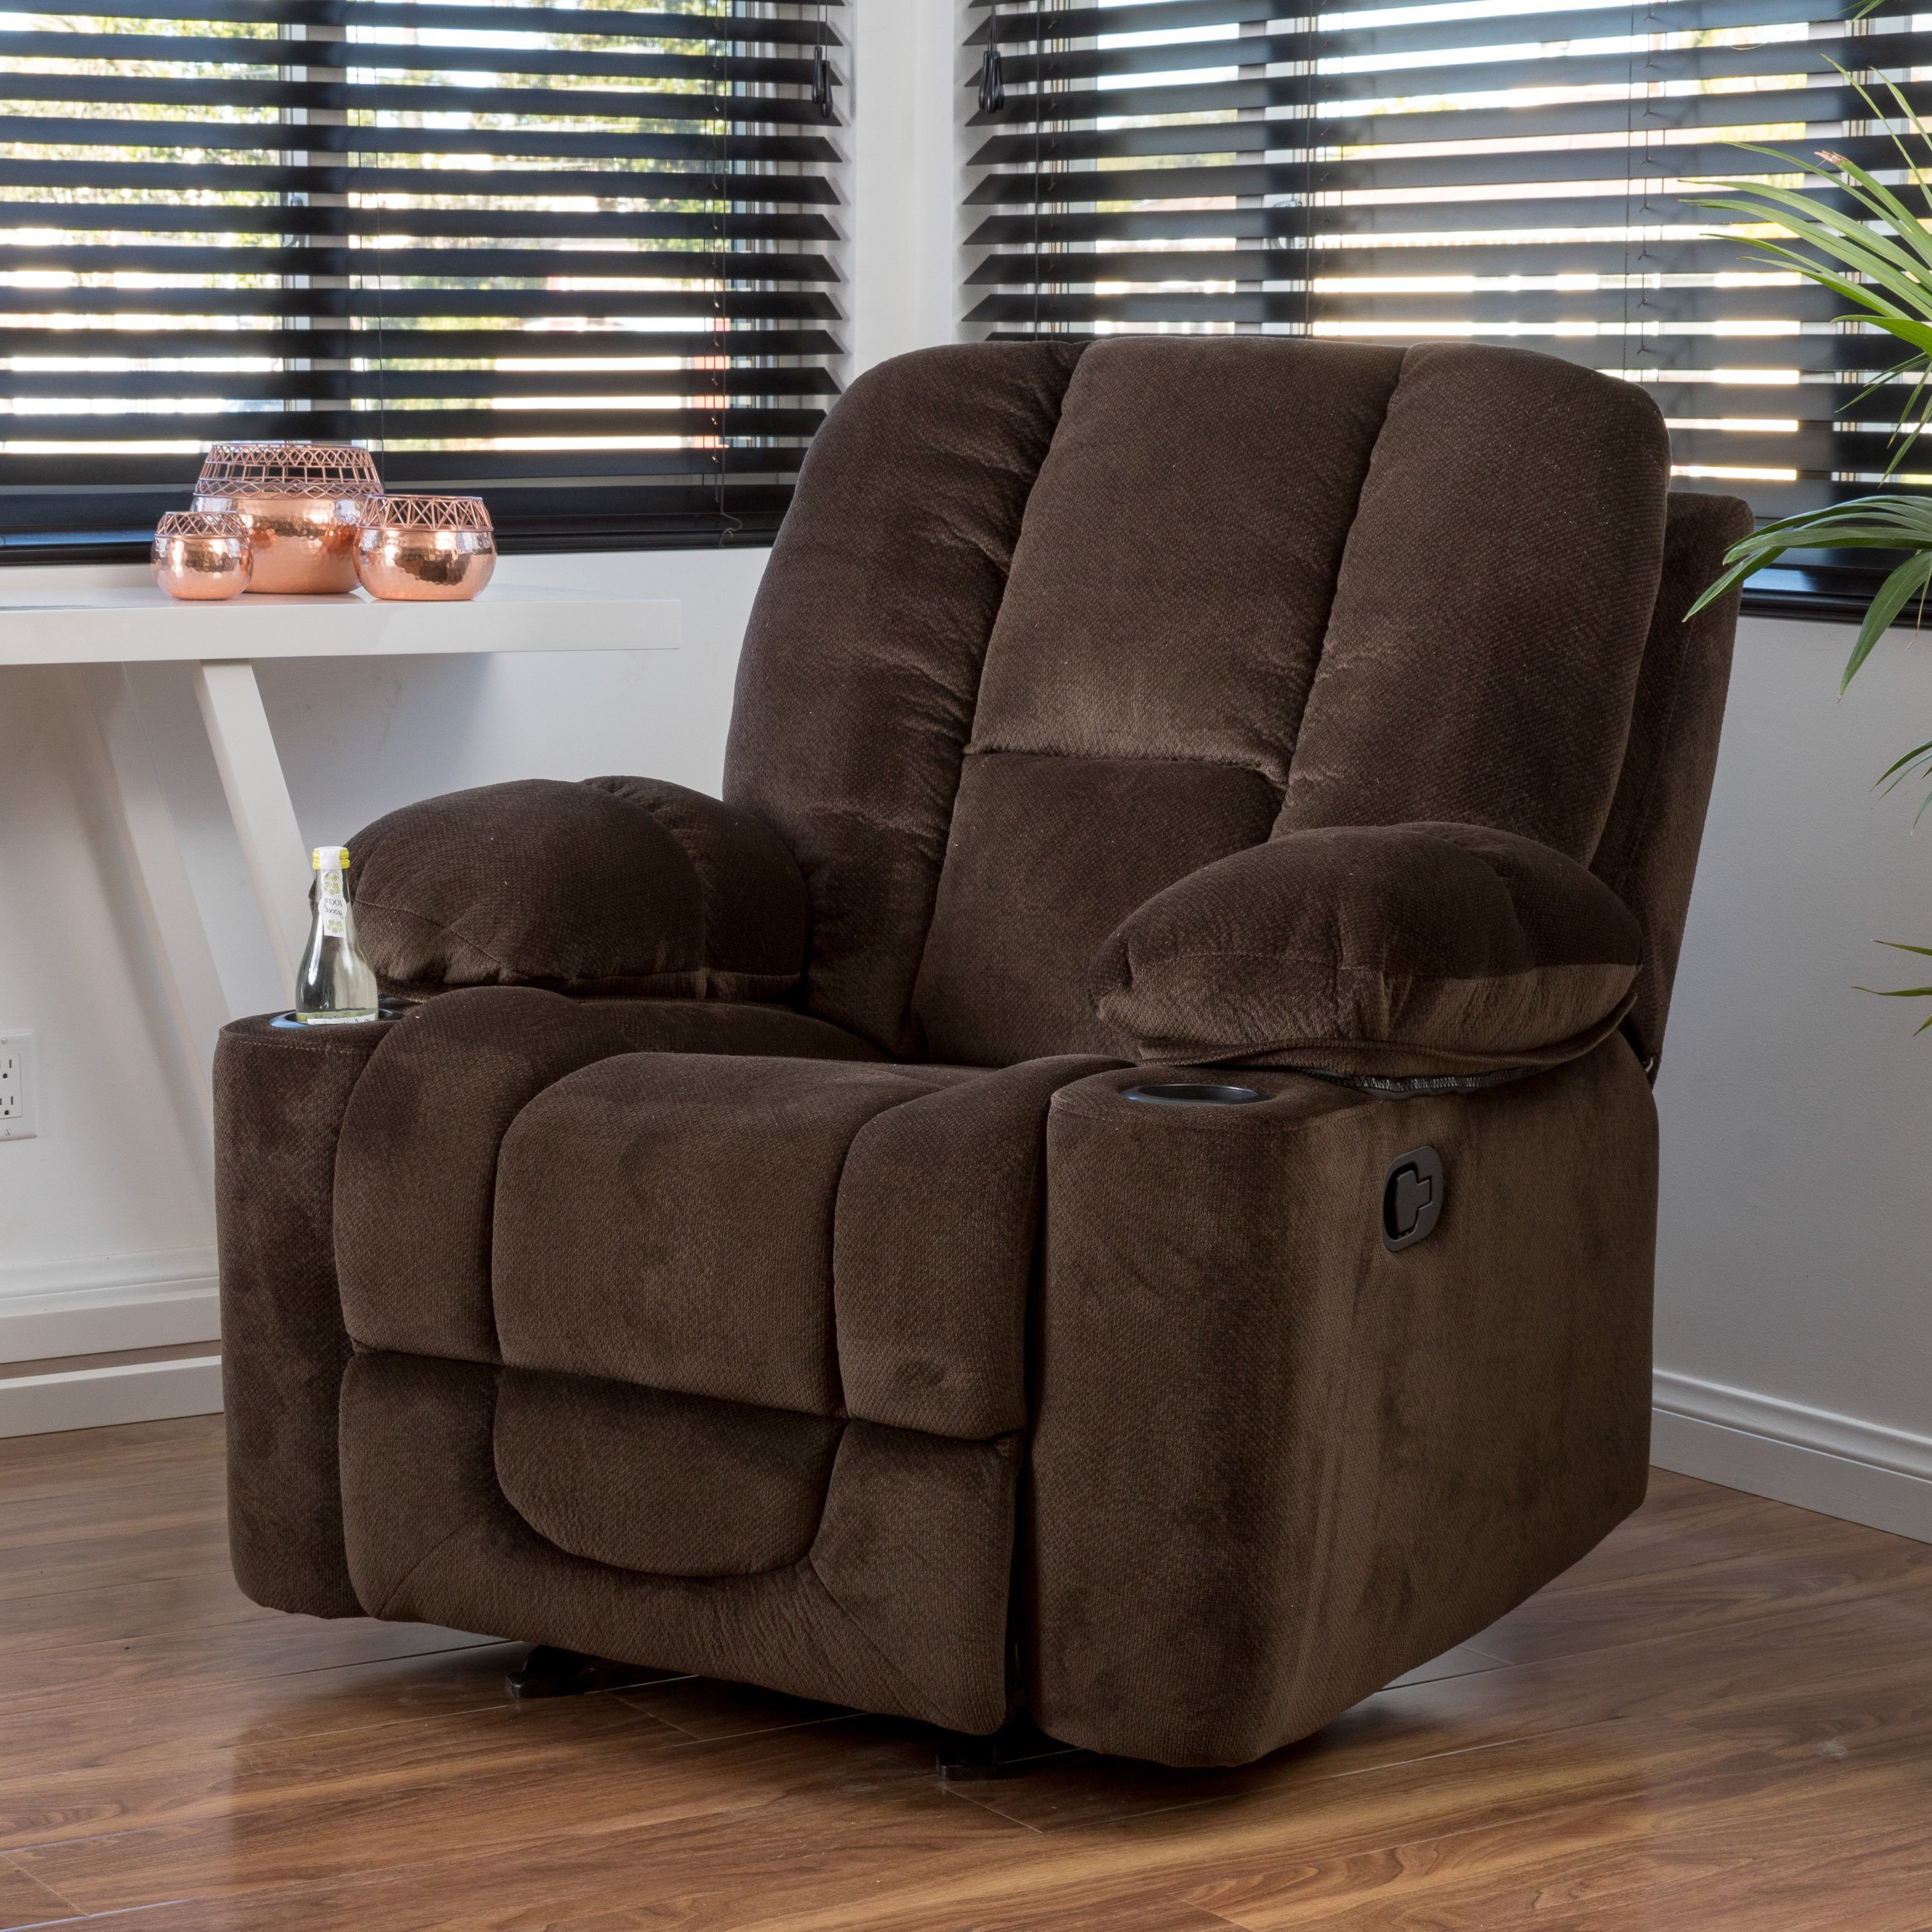 Shop Gannon Fabric Glider Recliner Club Chairchristopher Knight With Regard To 2019 Gannon Linen Power Swivel Recliners (View 3 of 20)